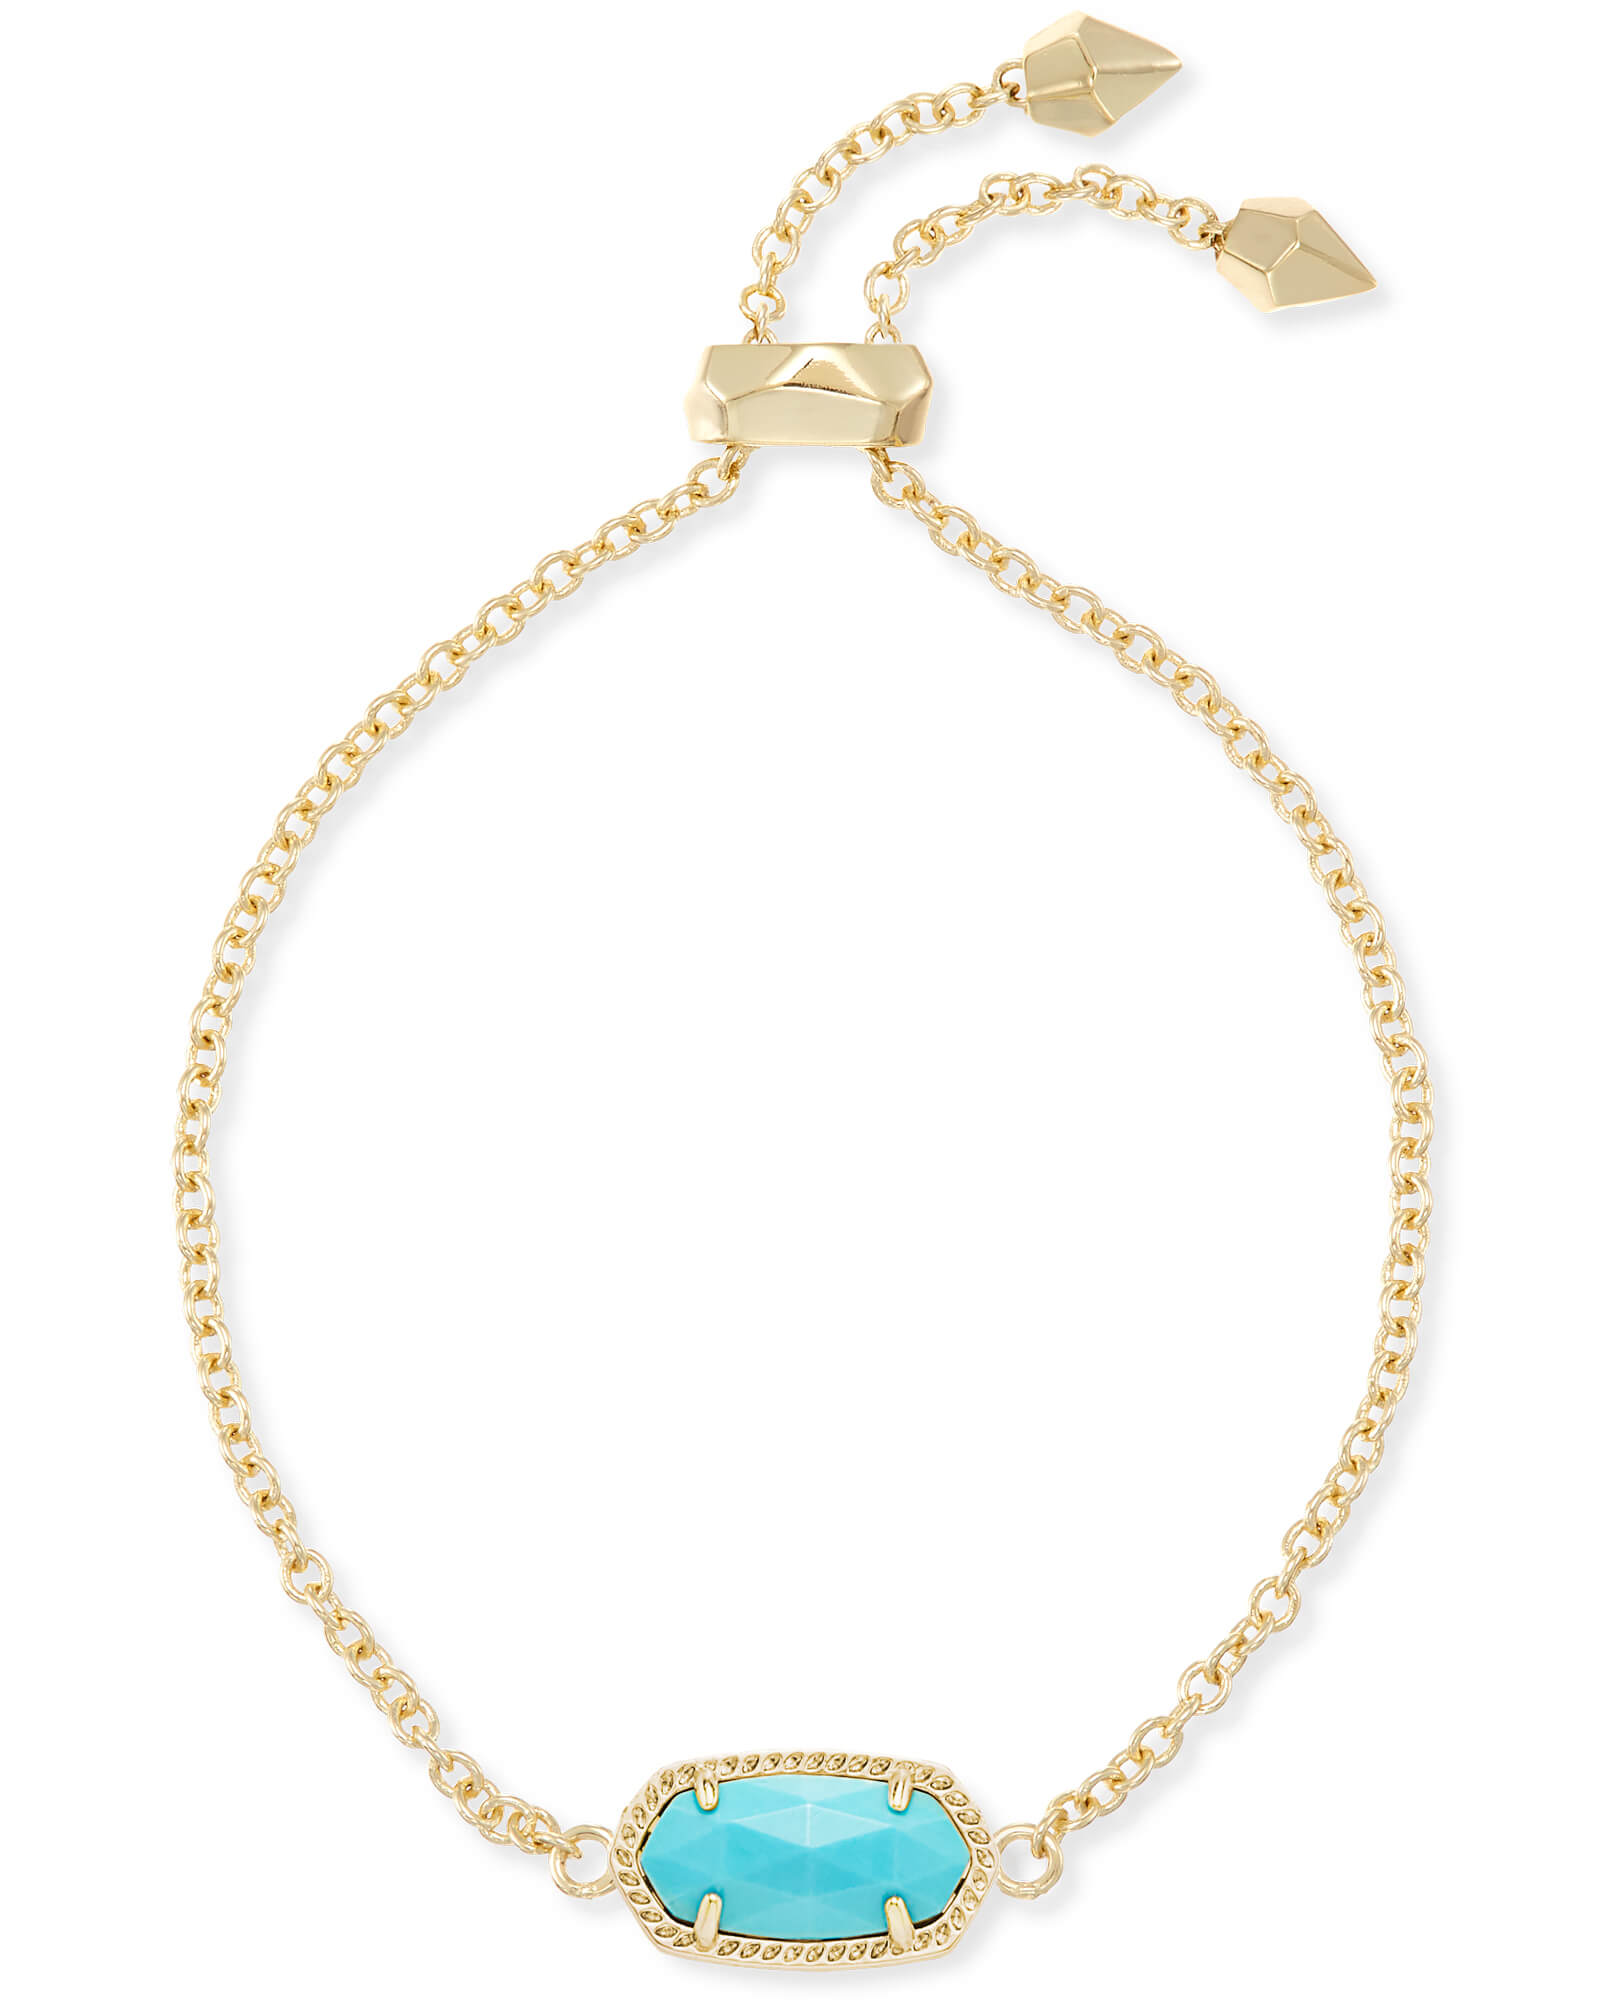 Elaina Adjustable Chain Bracelet in Turquoise